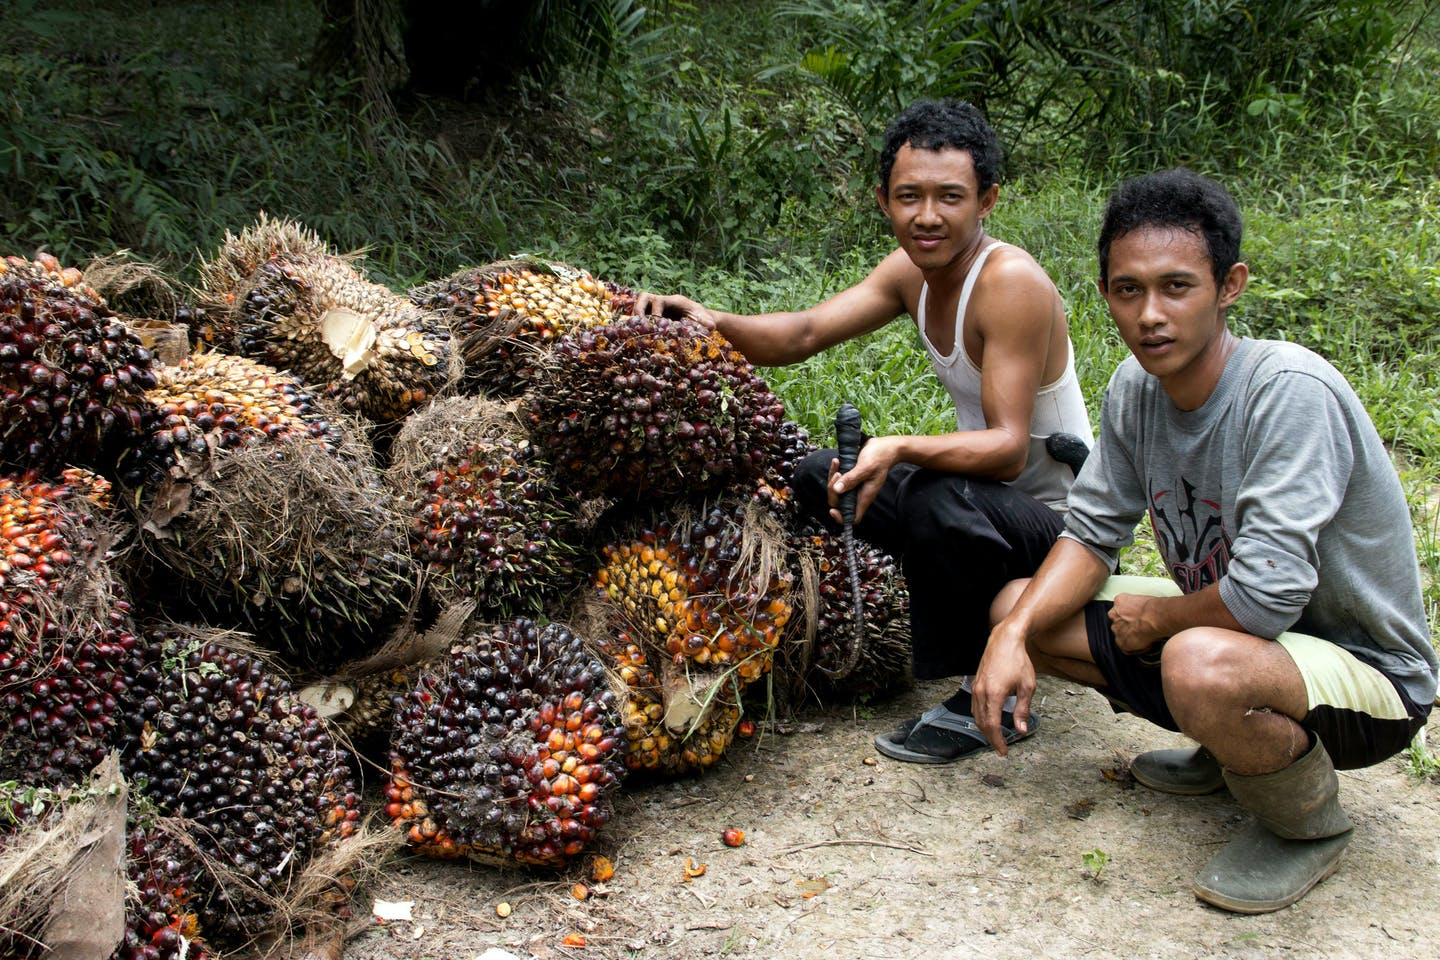 Oil Palm Harvesters in Indonesia